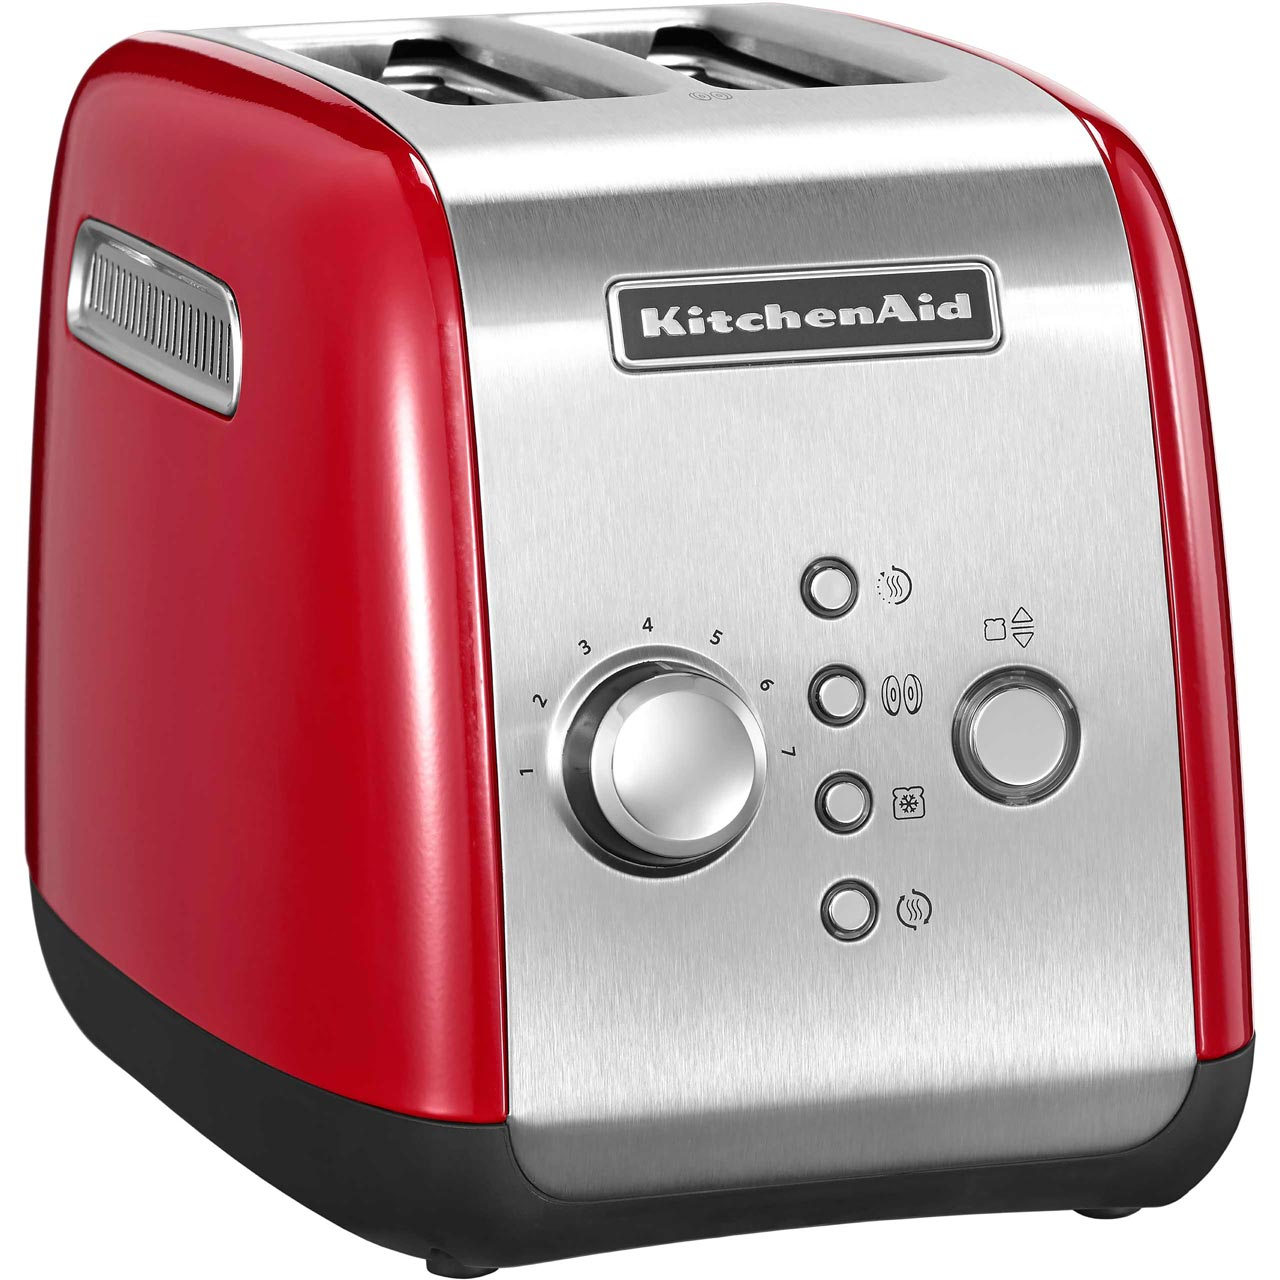 canada get slice red quotations kitchenaid toaster cookware info digital netmanma a appliances